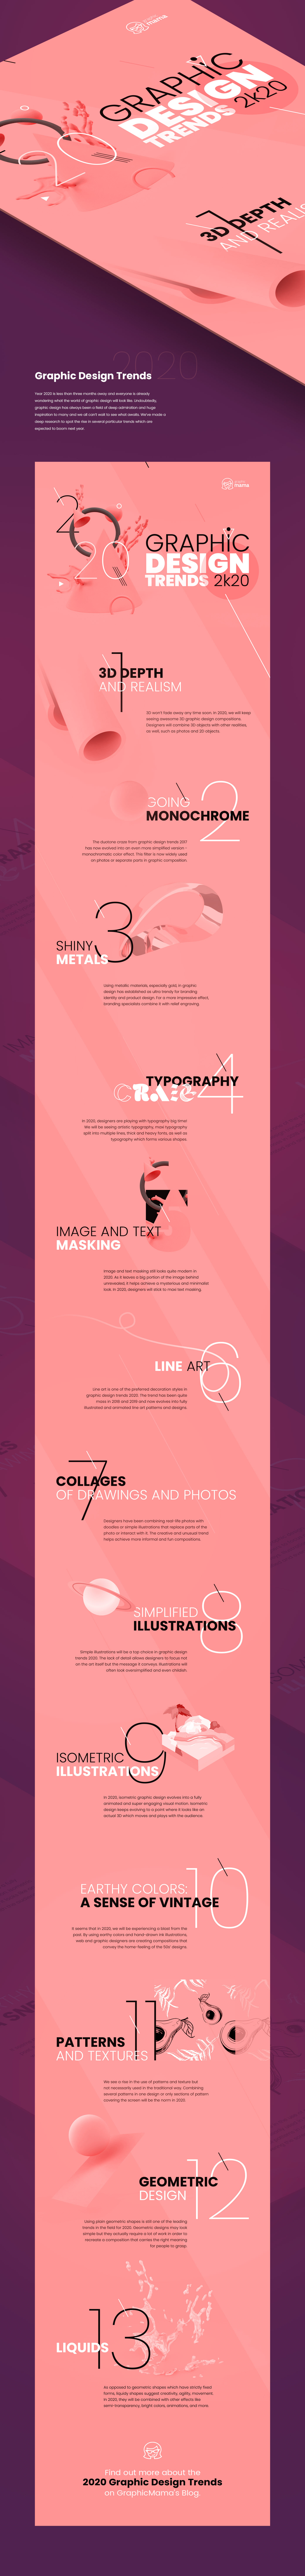 Real Trends 2020.Top Graphic Design Trends 2020 On Behance